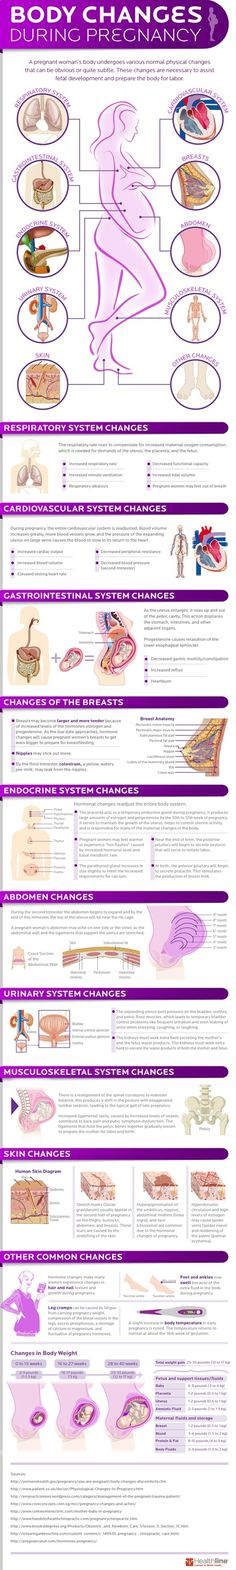 How a Woman's Body Changes During Pregnancy (Infographic). Body Changes During Pregnancy Week By Week Pregnancy Info, Pregnancy Health, Early Pregnancy, Pregnancy Anatomy, Symptoms Pregnancy, Pregnancy Timeline, Pregnancy Calendar, Pregnancy Art, Pregnancy Hormones